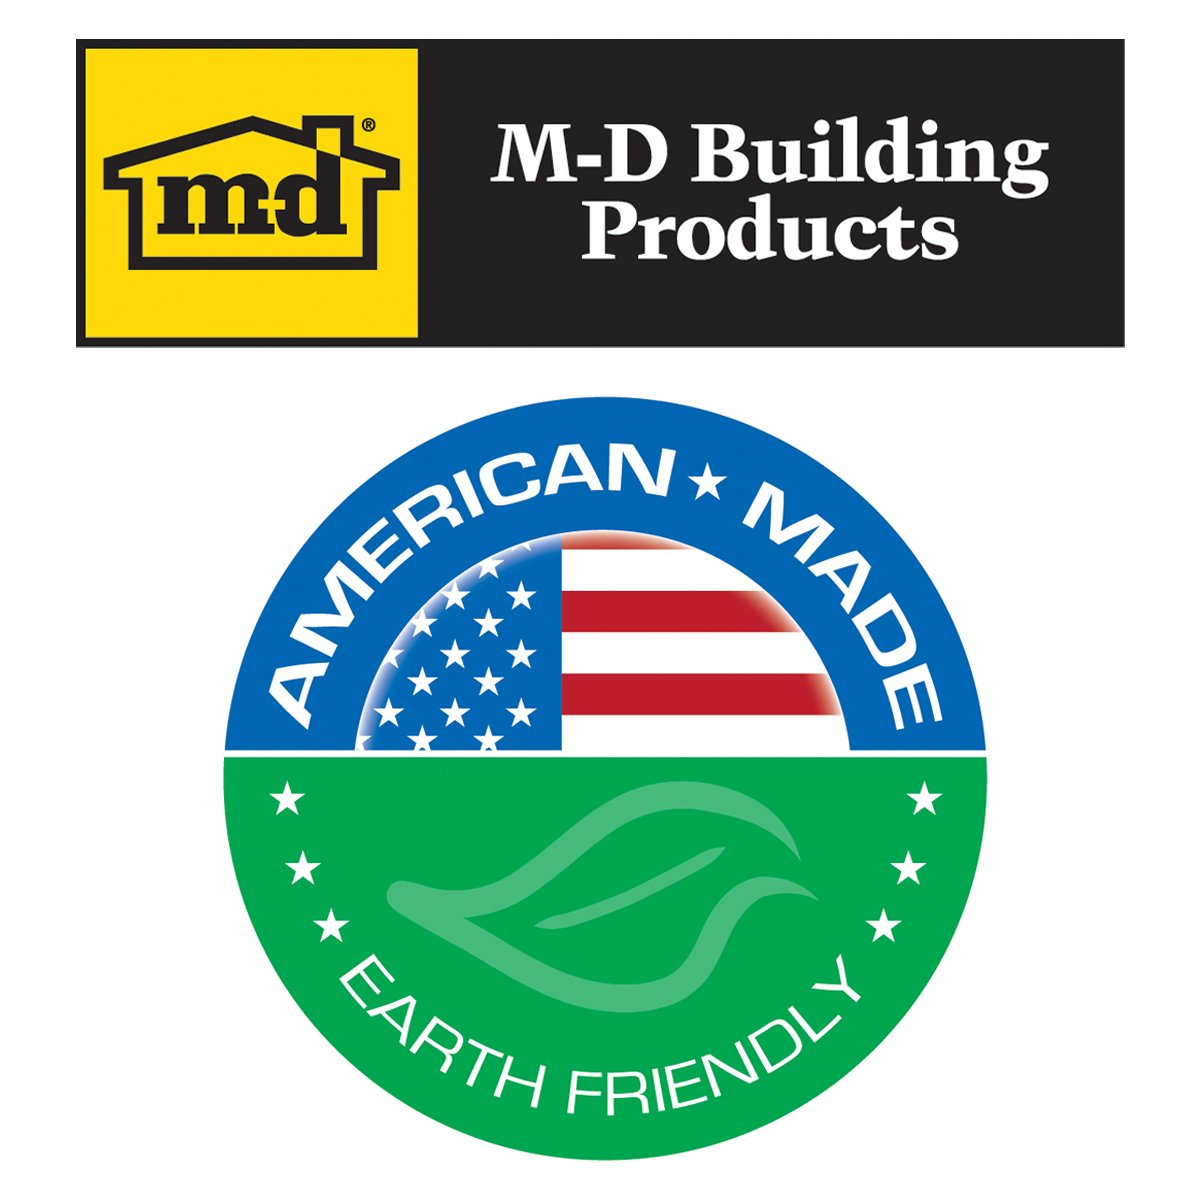 M-D Building Products 56064 1-Feet by 2-Feet .019-Inch Thick Plain Aluminum Sheet by M-D Building Products (Image #2)